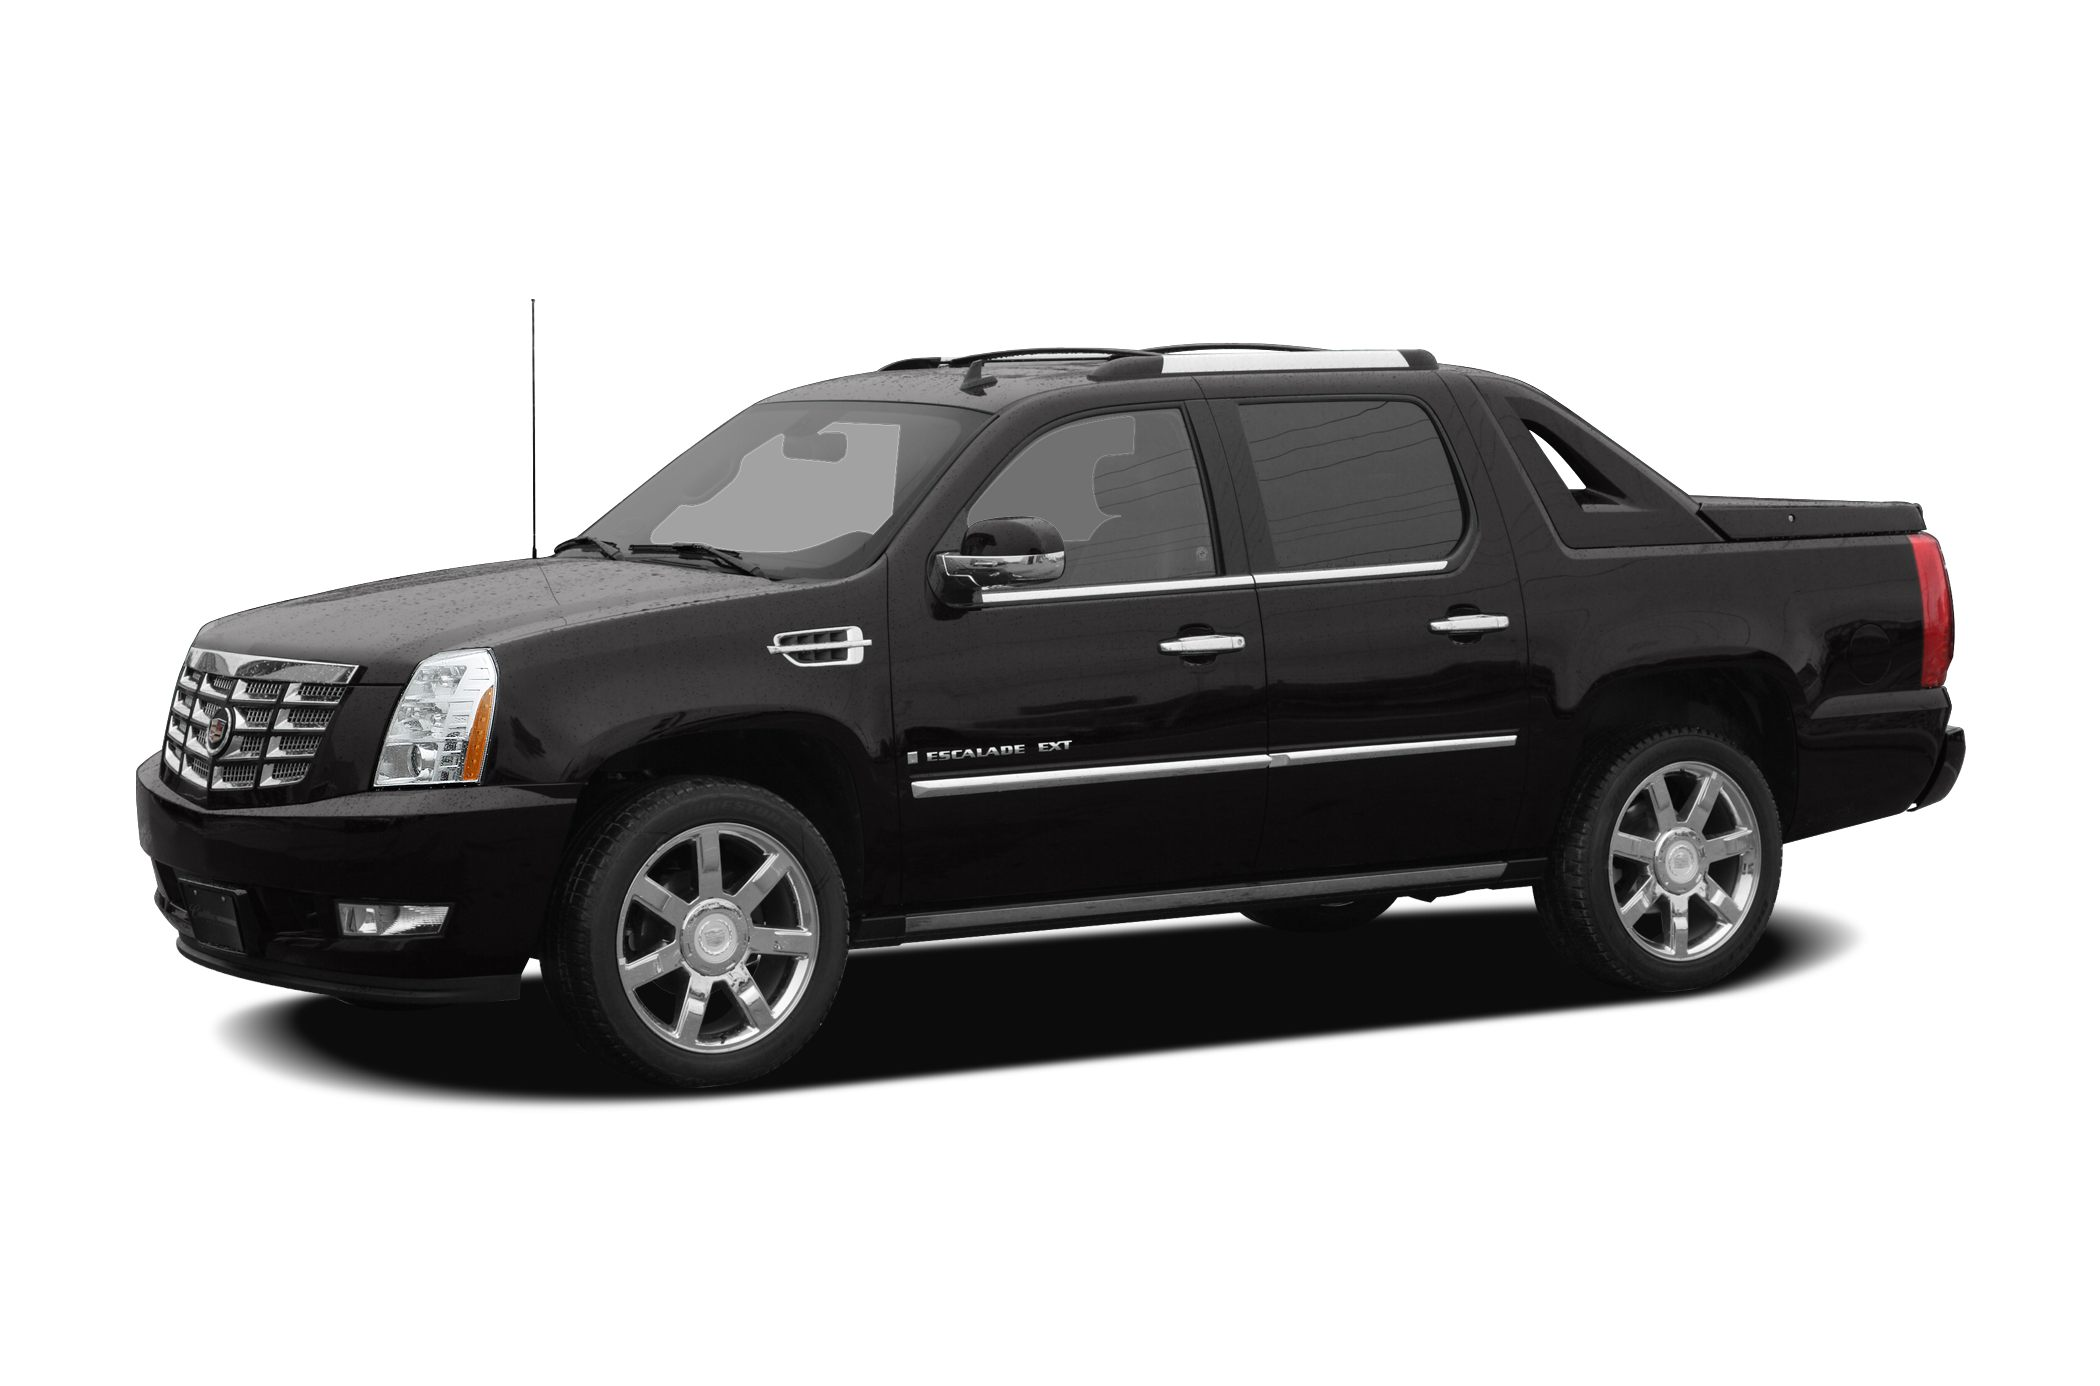 2007 Cadillac Escalade EXT Crew Cab Pickup for sale in Arlington for $24,995 with 83,367 miles